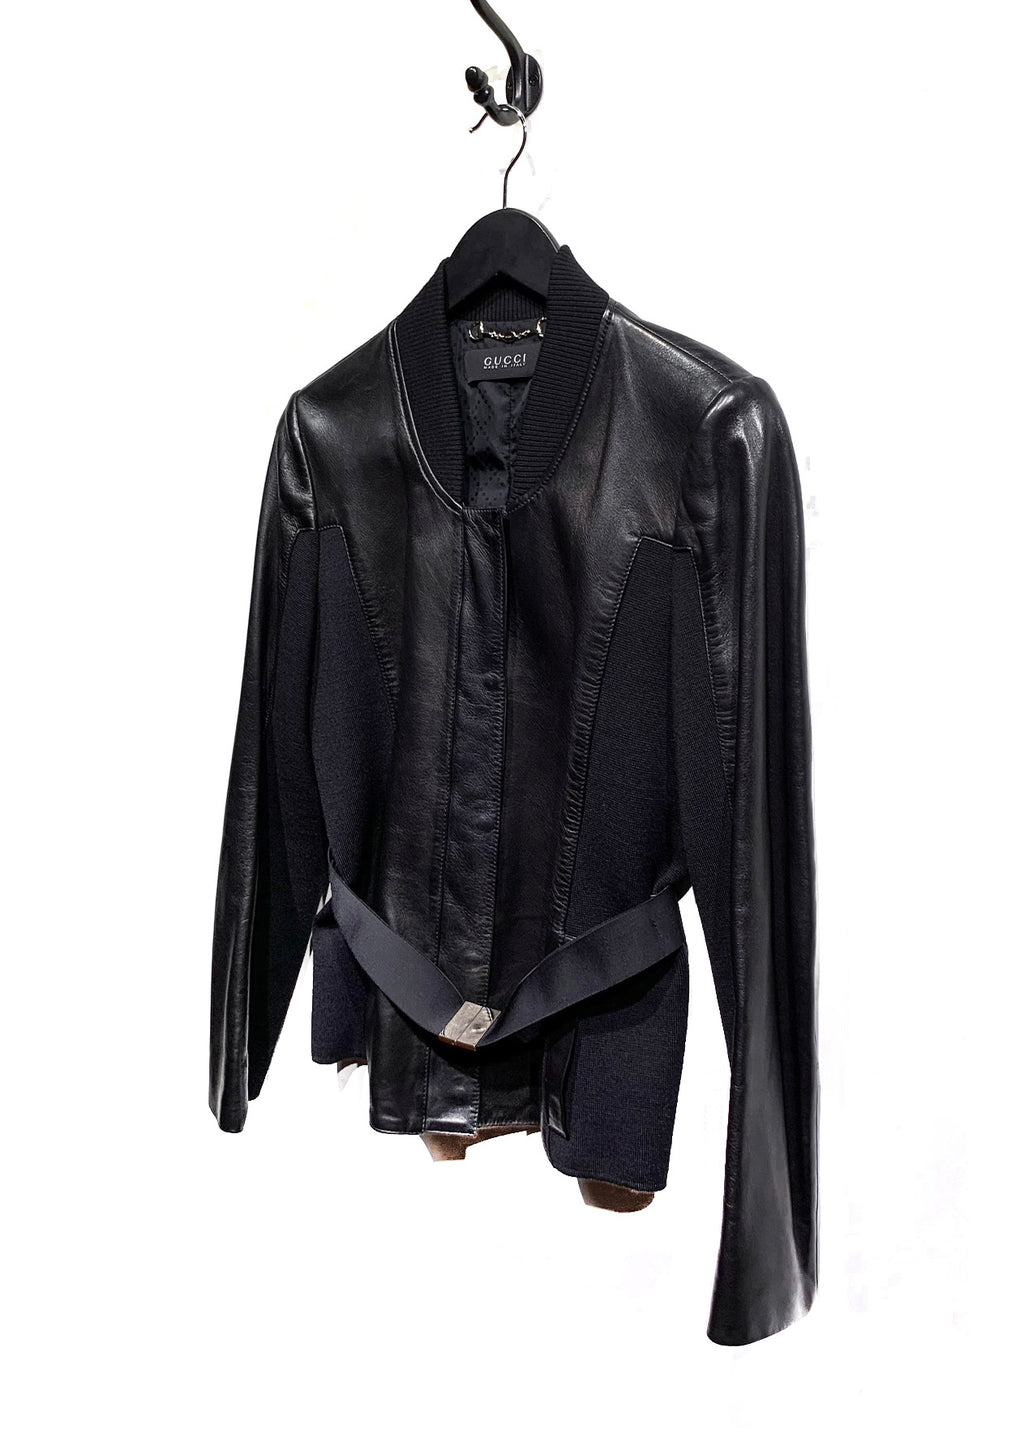 Gucci Black Leather Ribbed Insert Belted Jacket